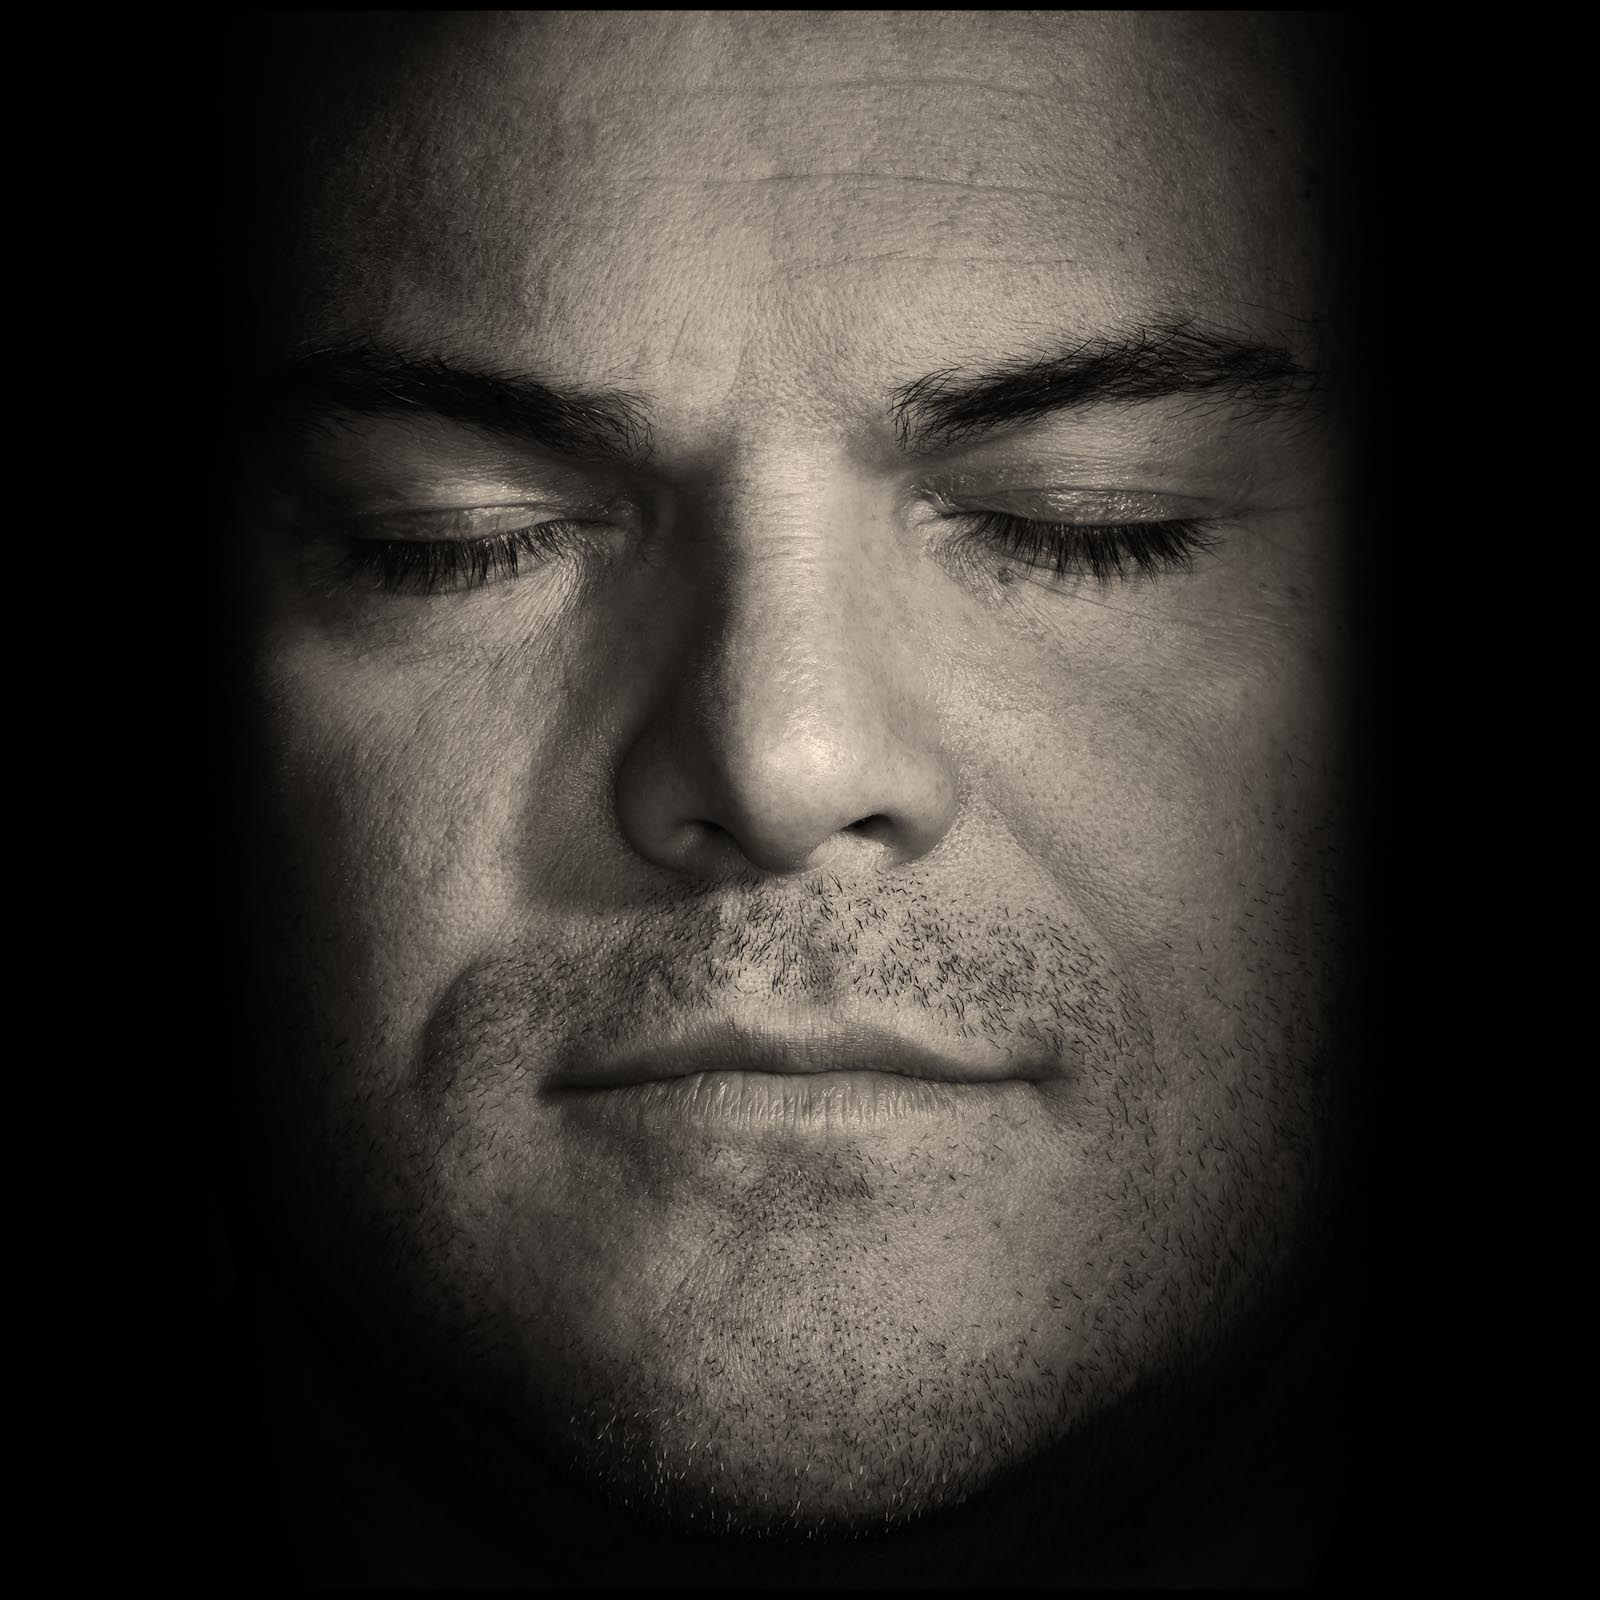 Jack Black - Austin, TX - Texas Monthly Magazine